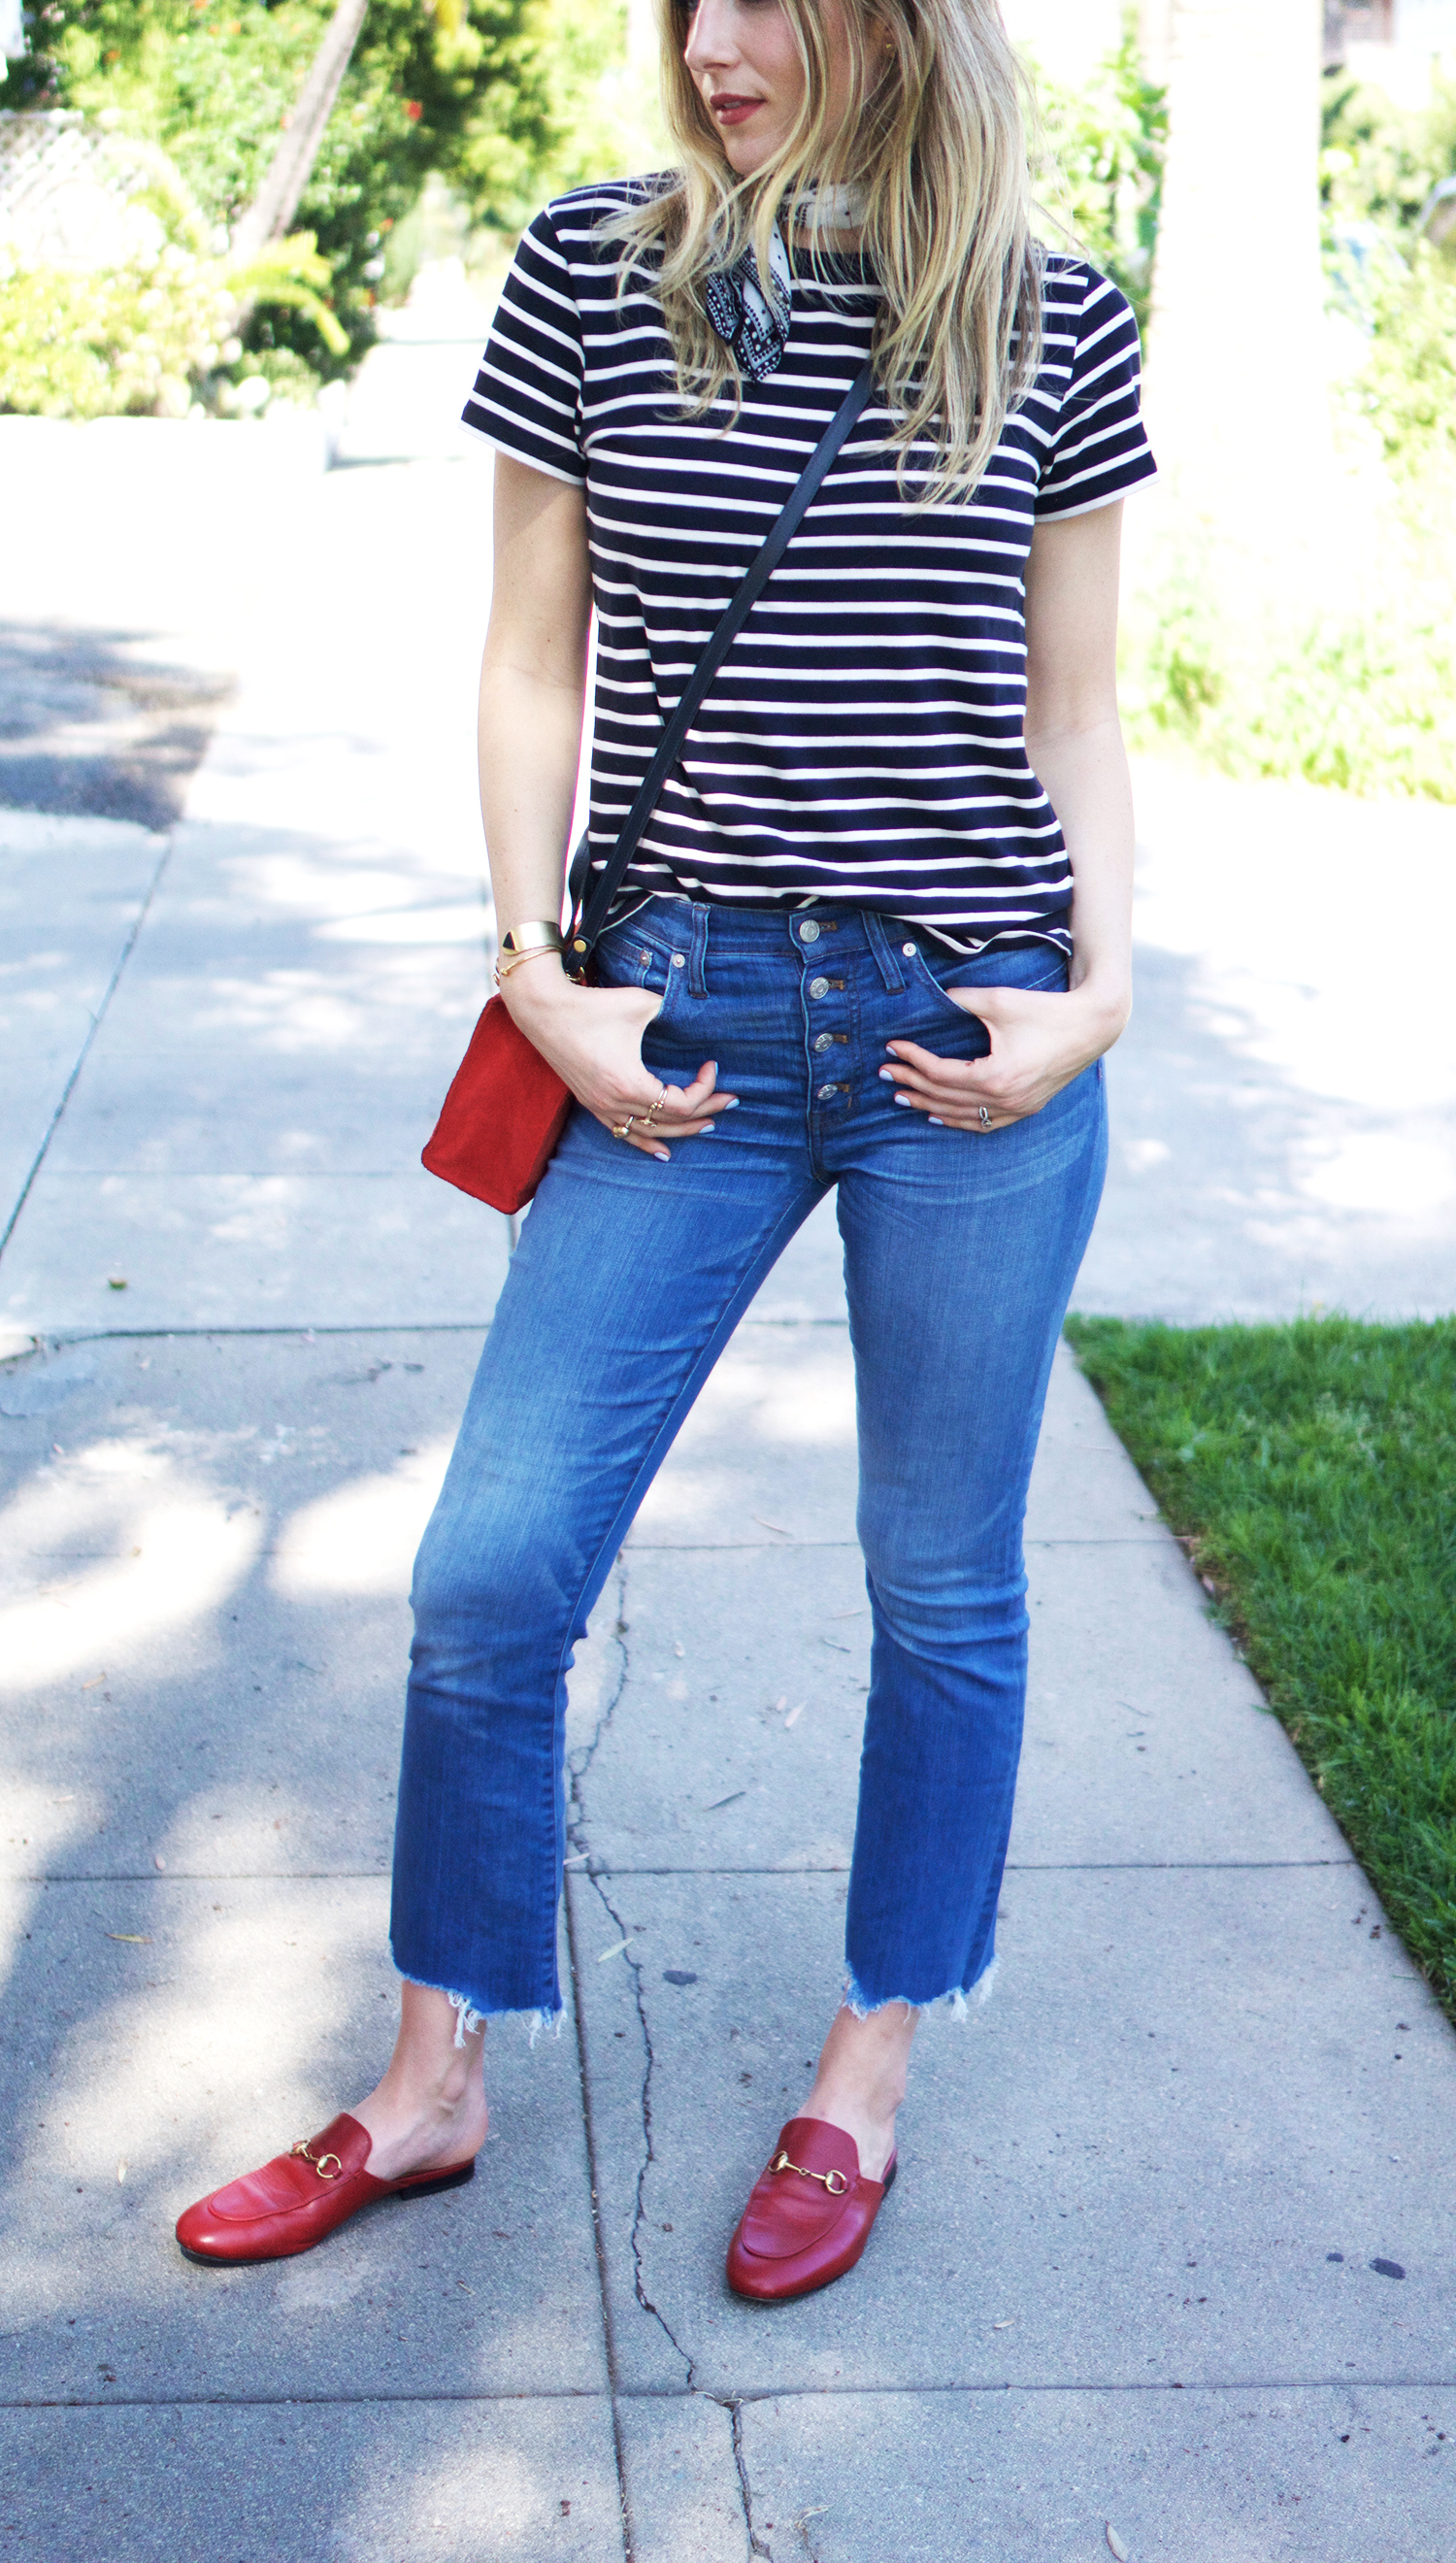 stripedtop-buttonflyjeans-redgucciloafers6.jpg